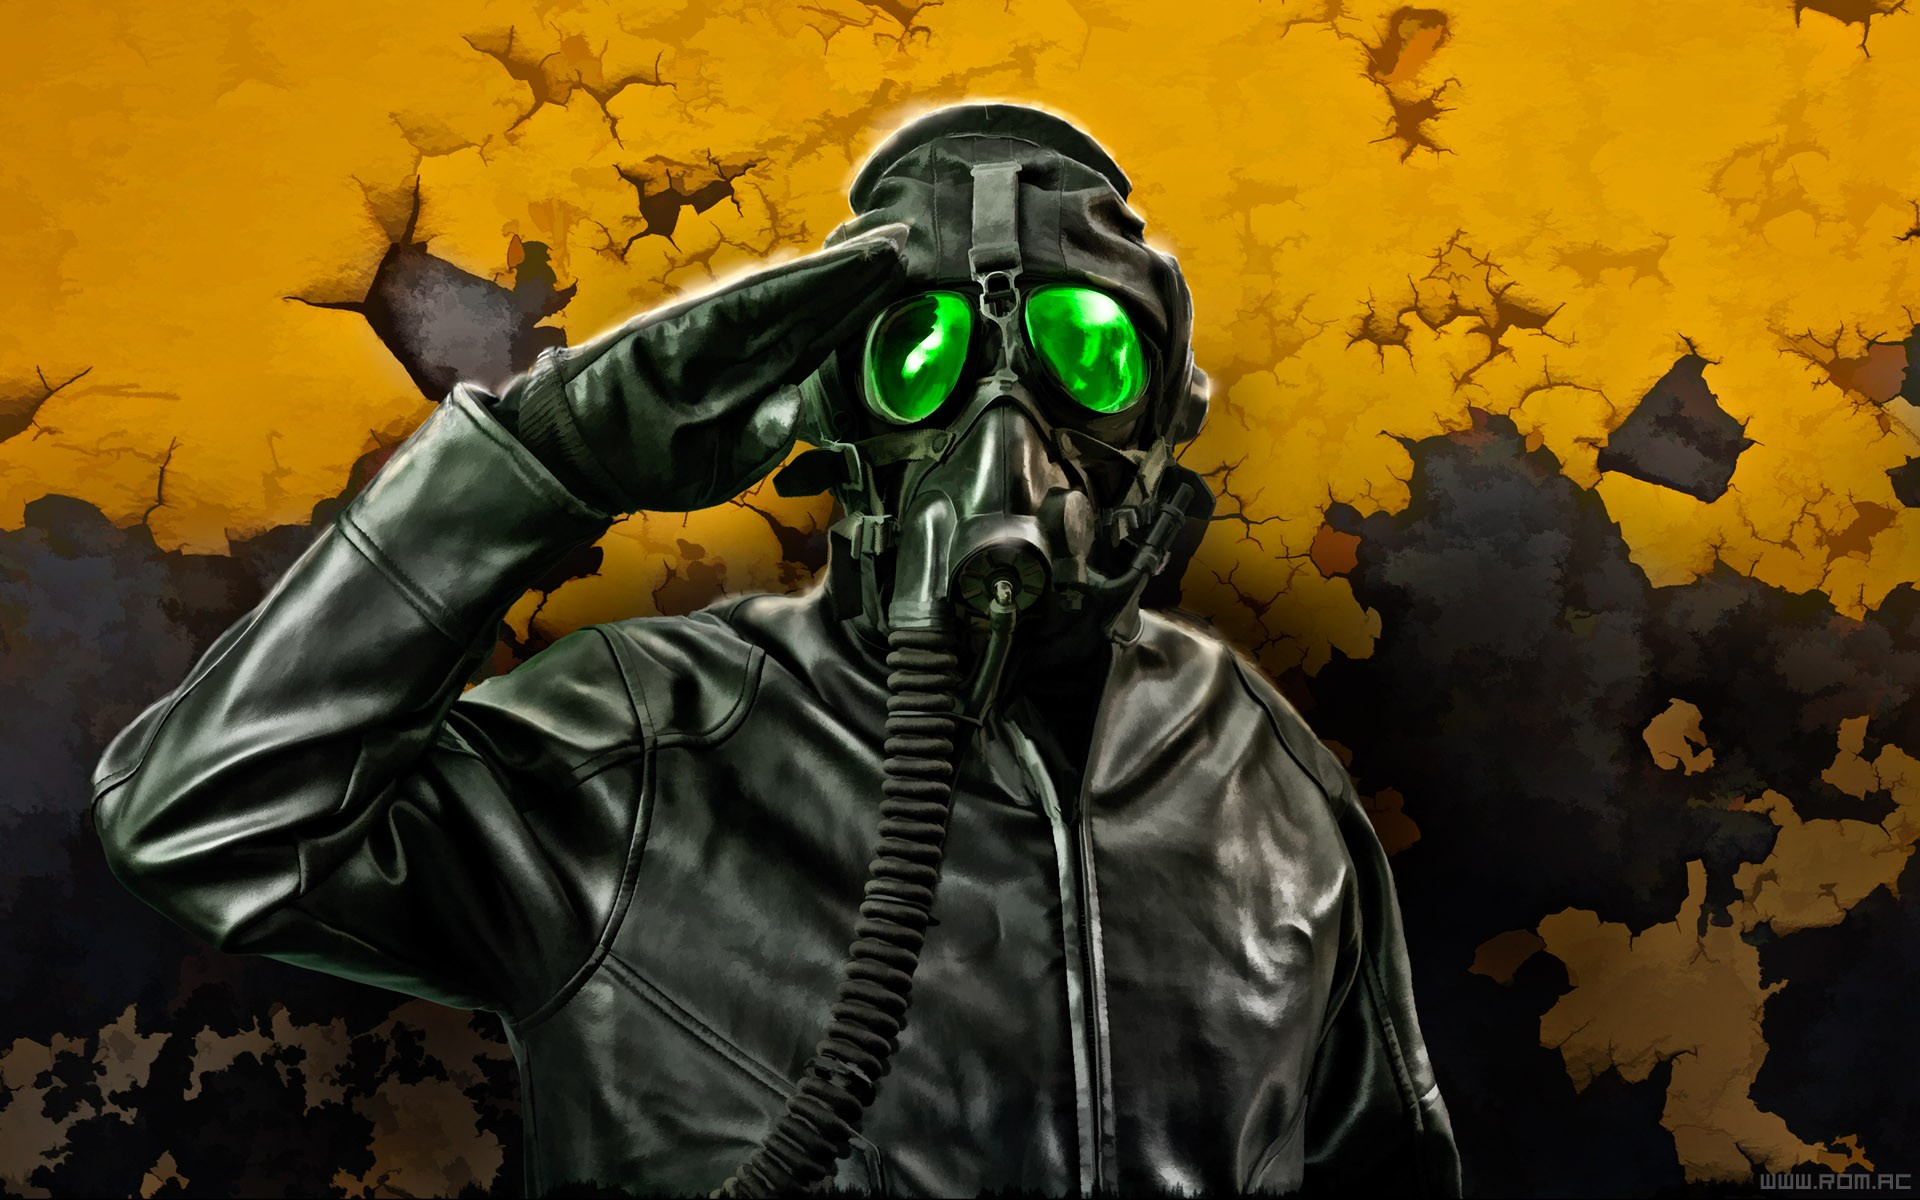 Gas Mask Wallpaper ① Download Free Hd Backgrounds For Desktop